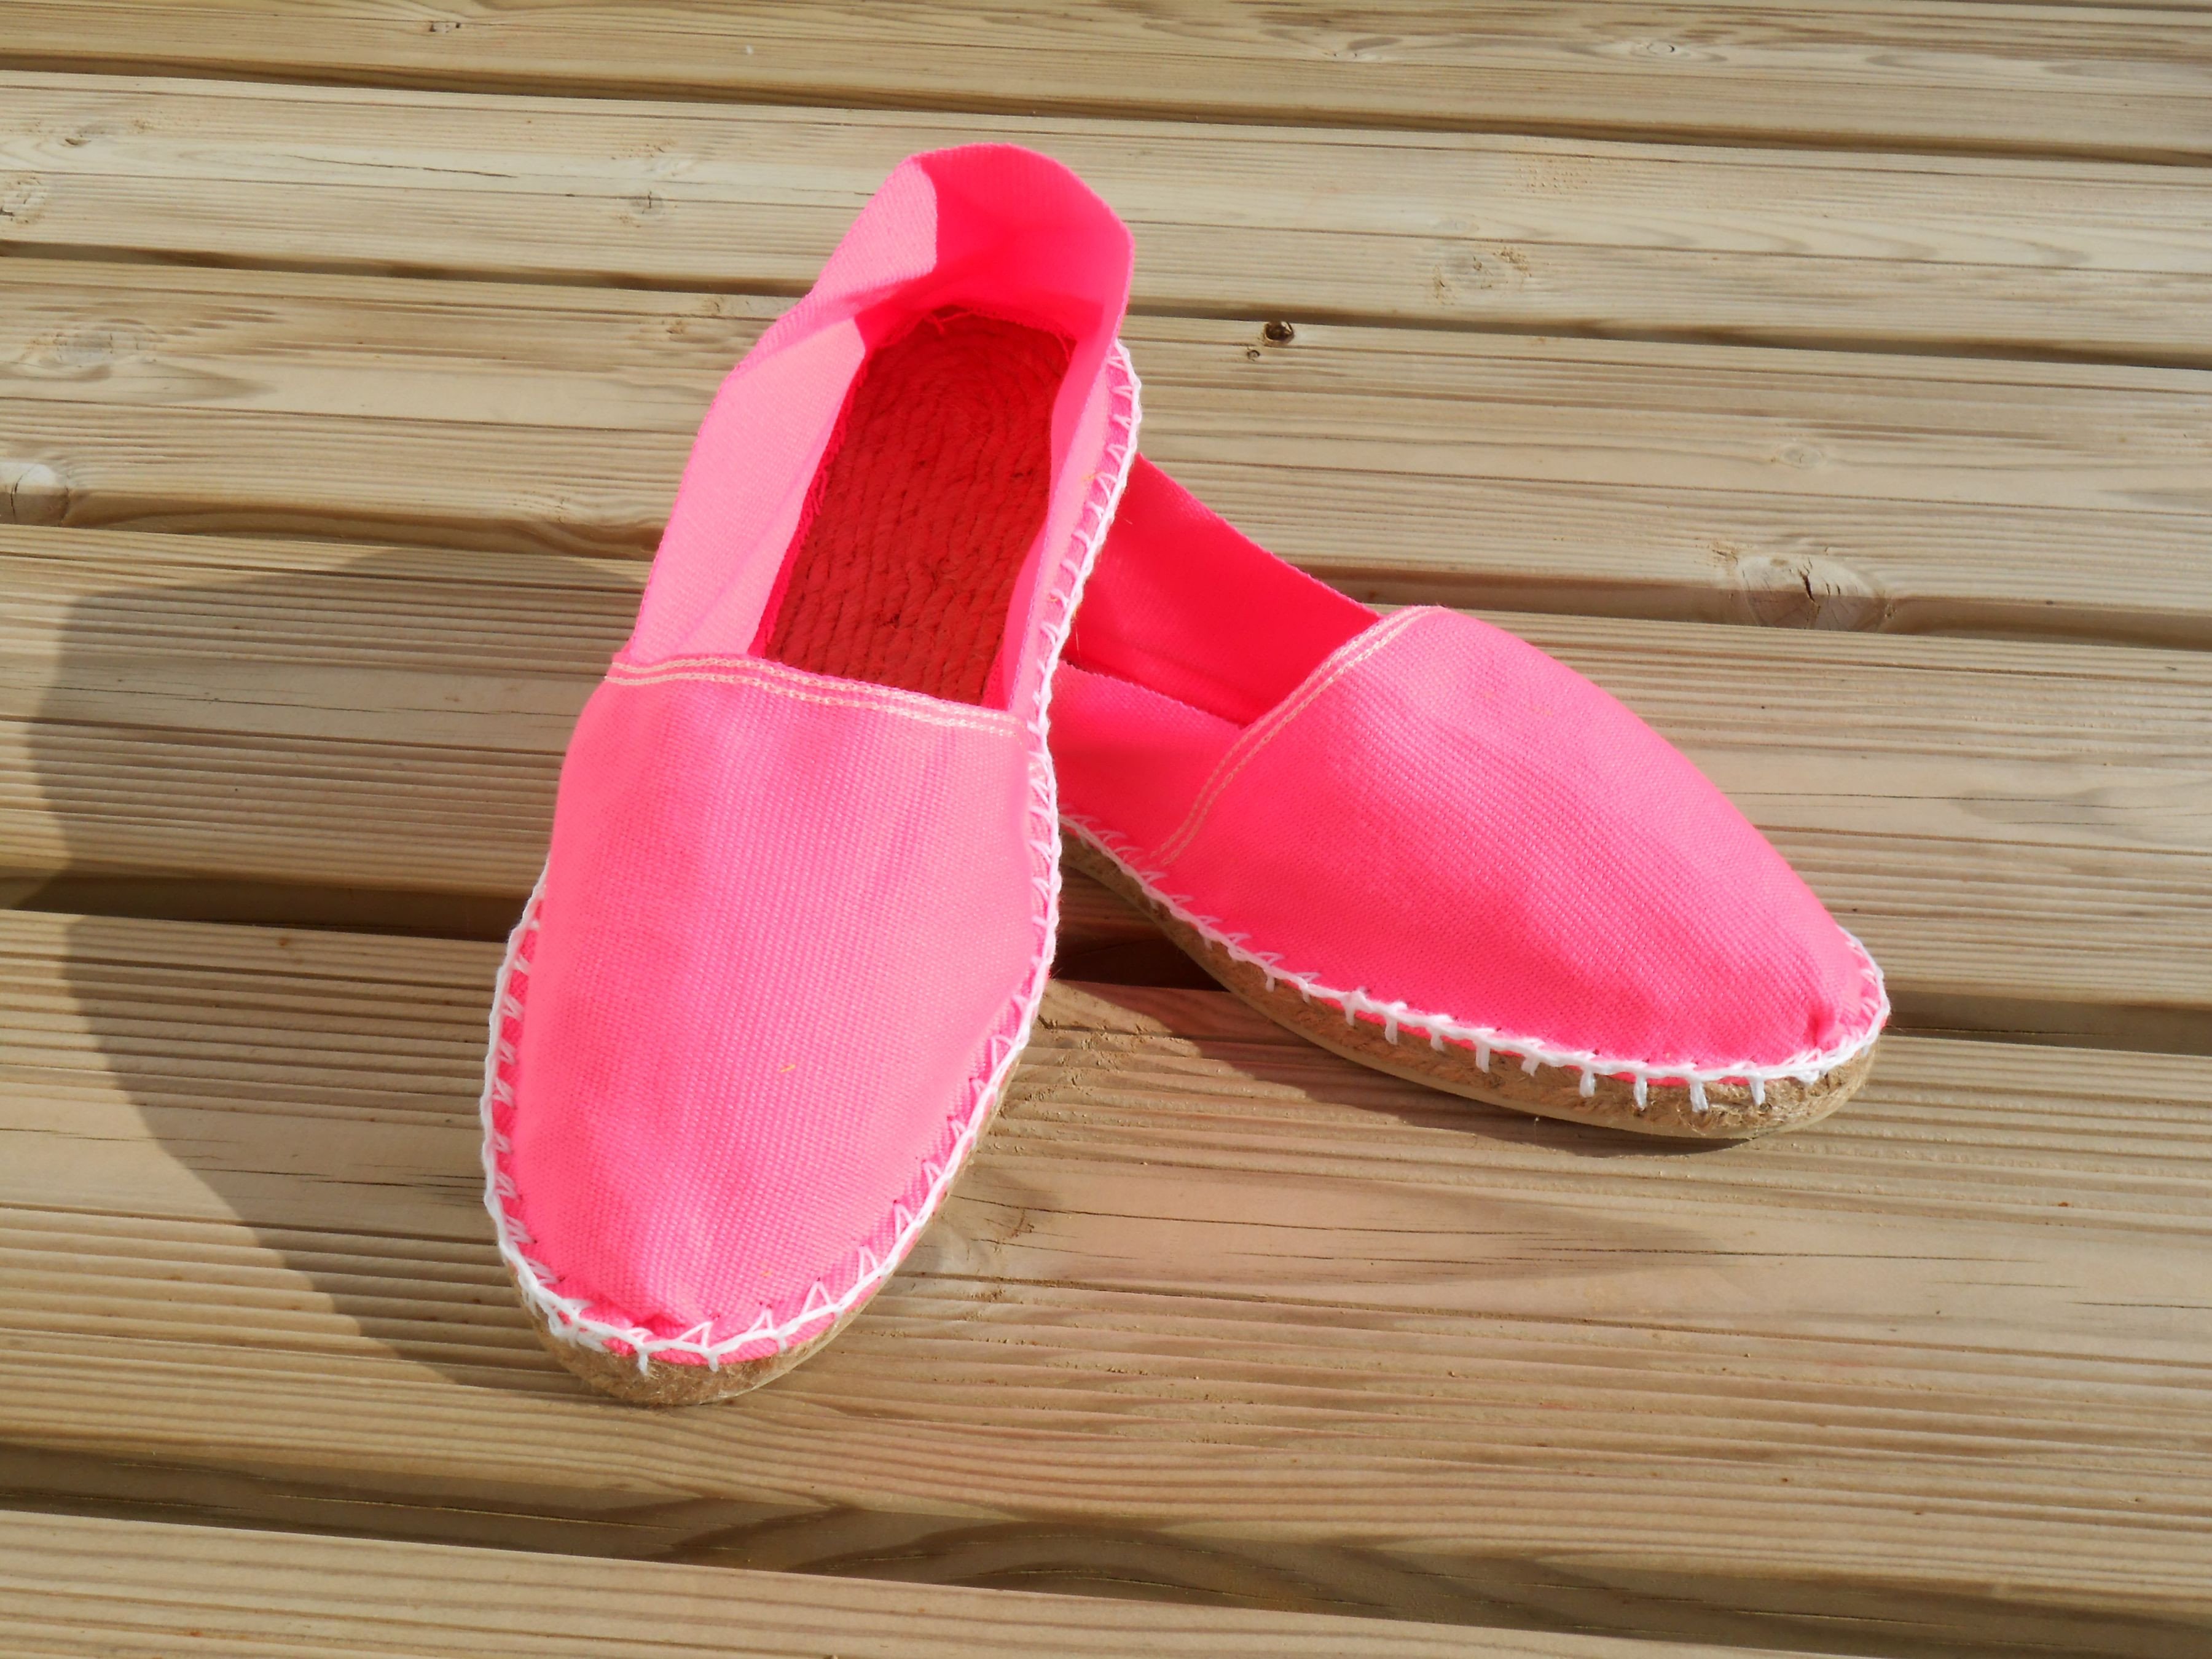 Espadrilles basques rose fluo taille 35